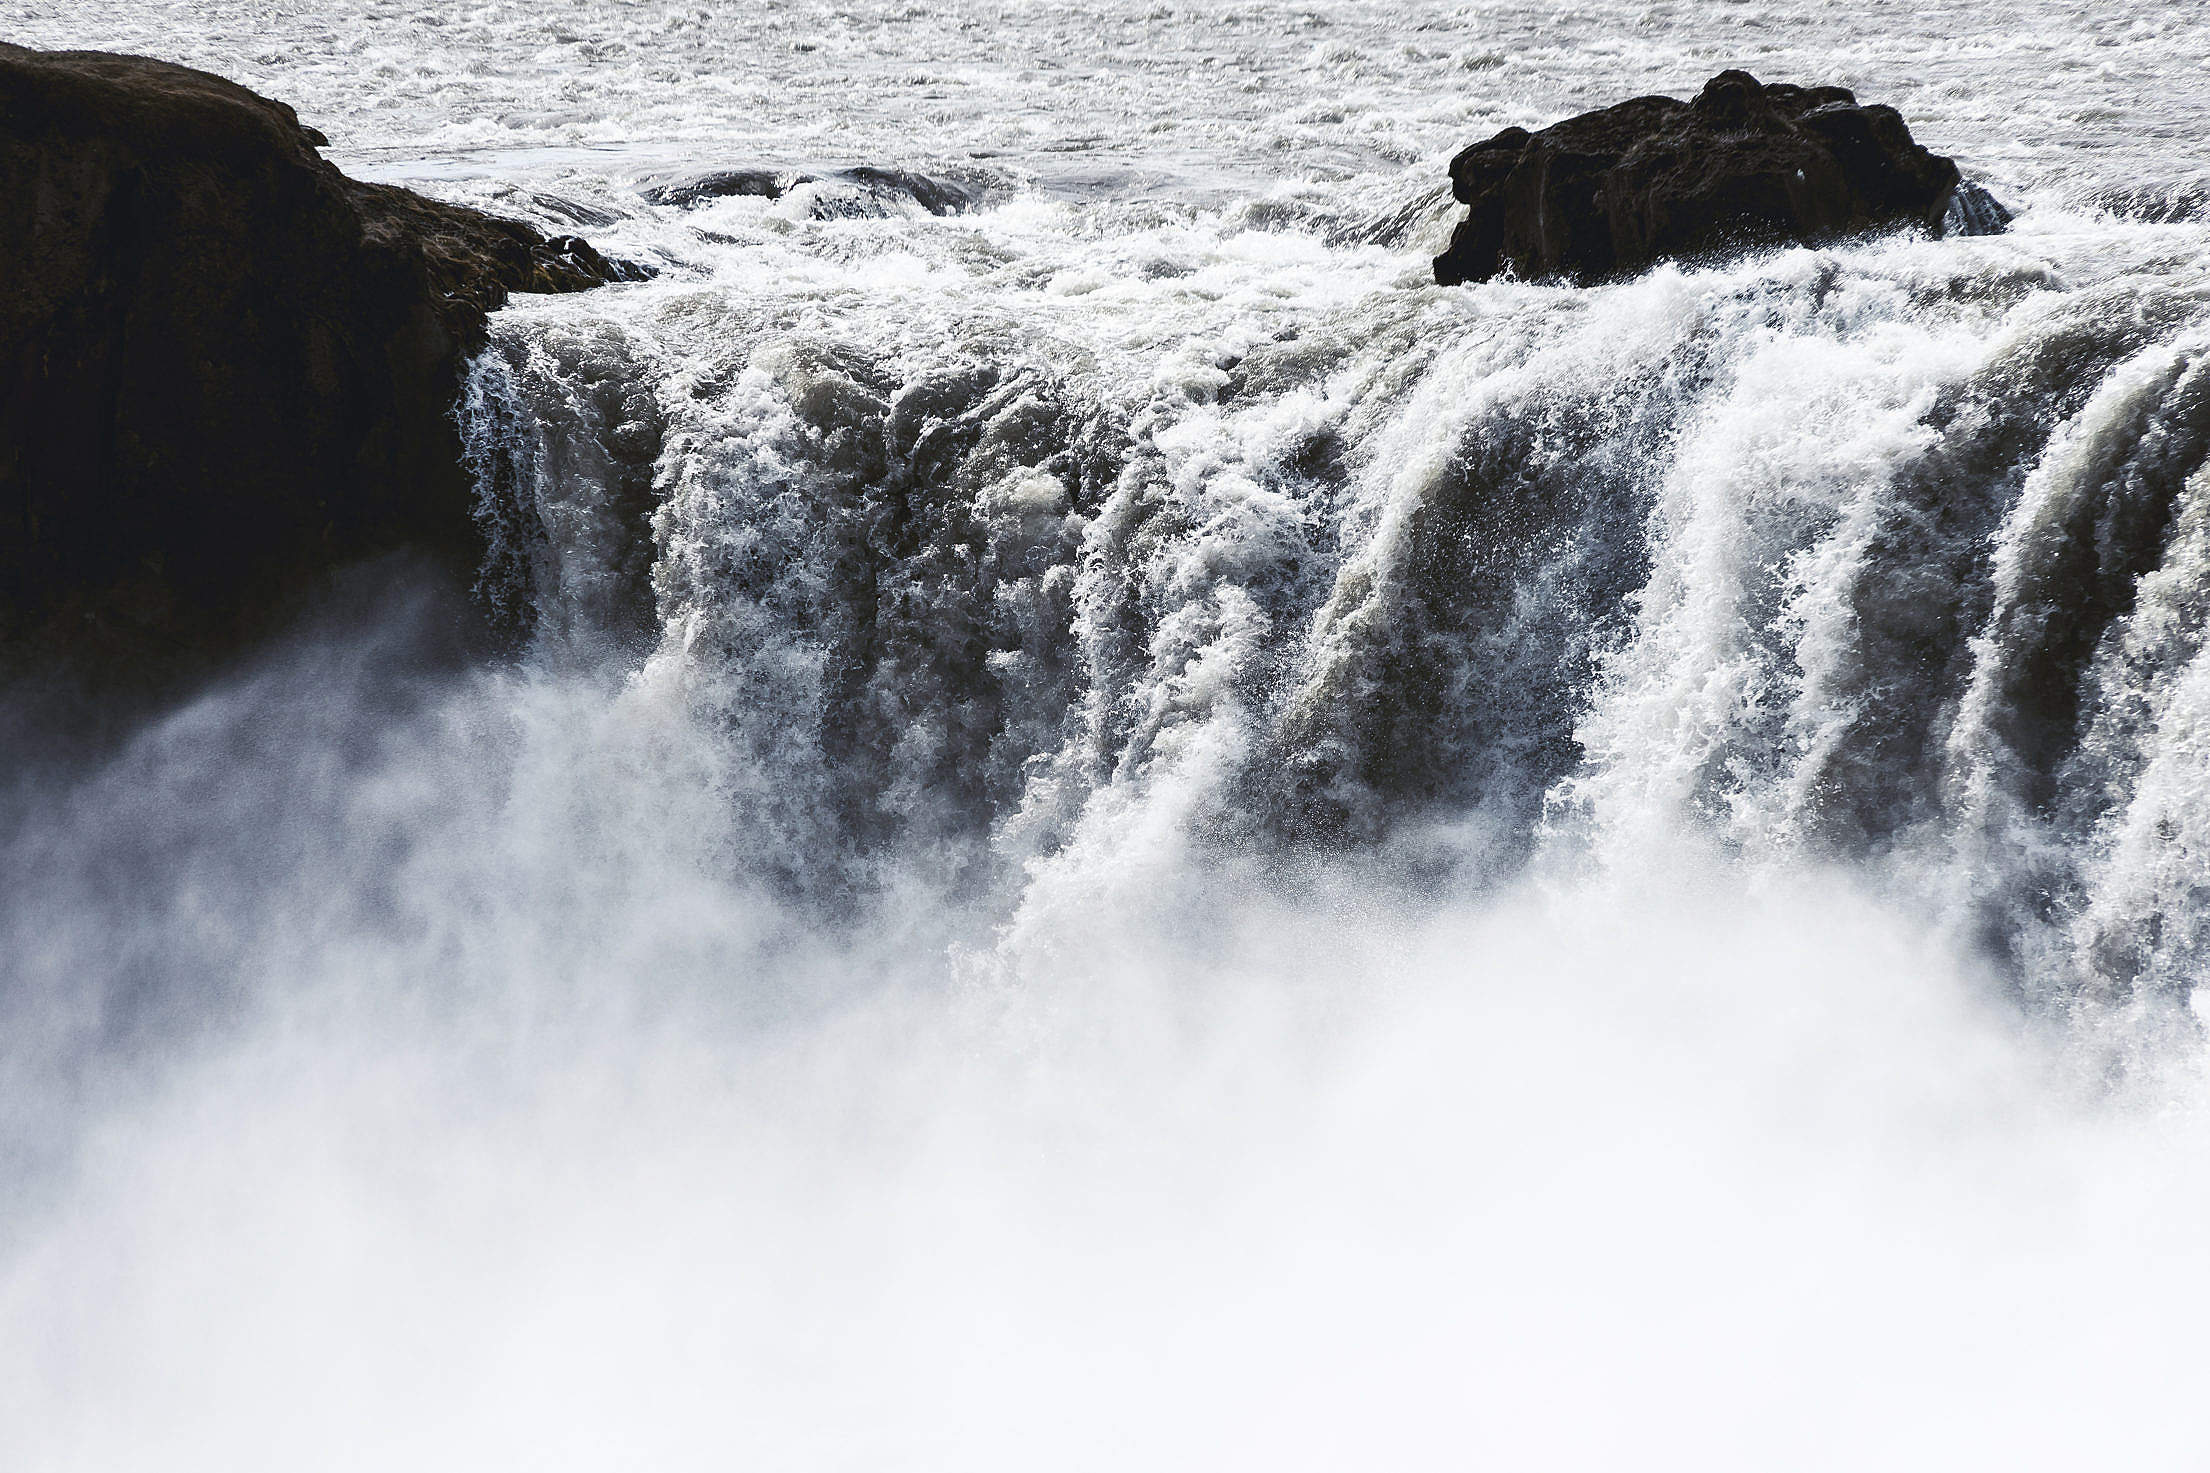 Goðafoss Waterfall from Above in Iceland Free Stock Photo